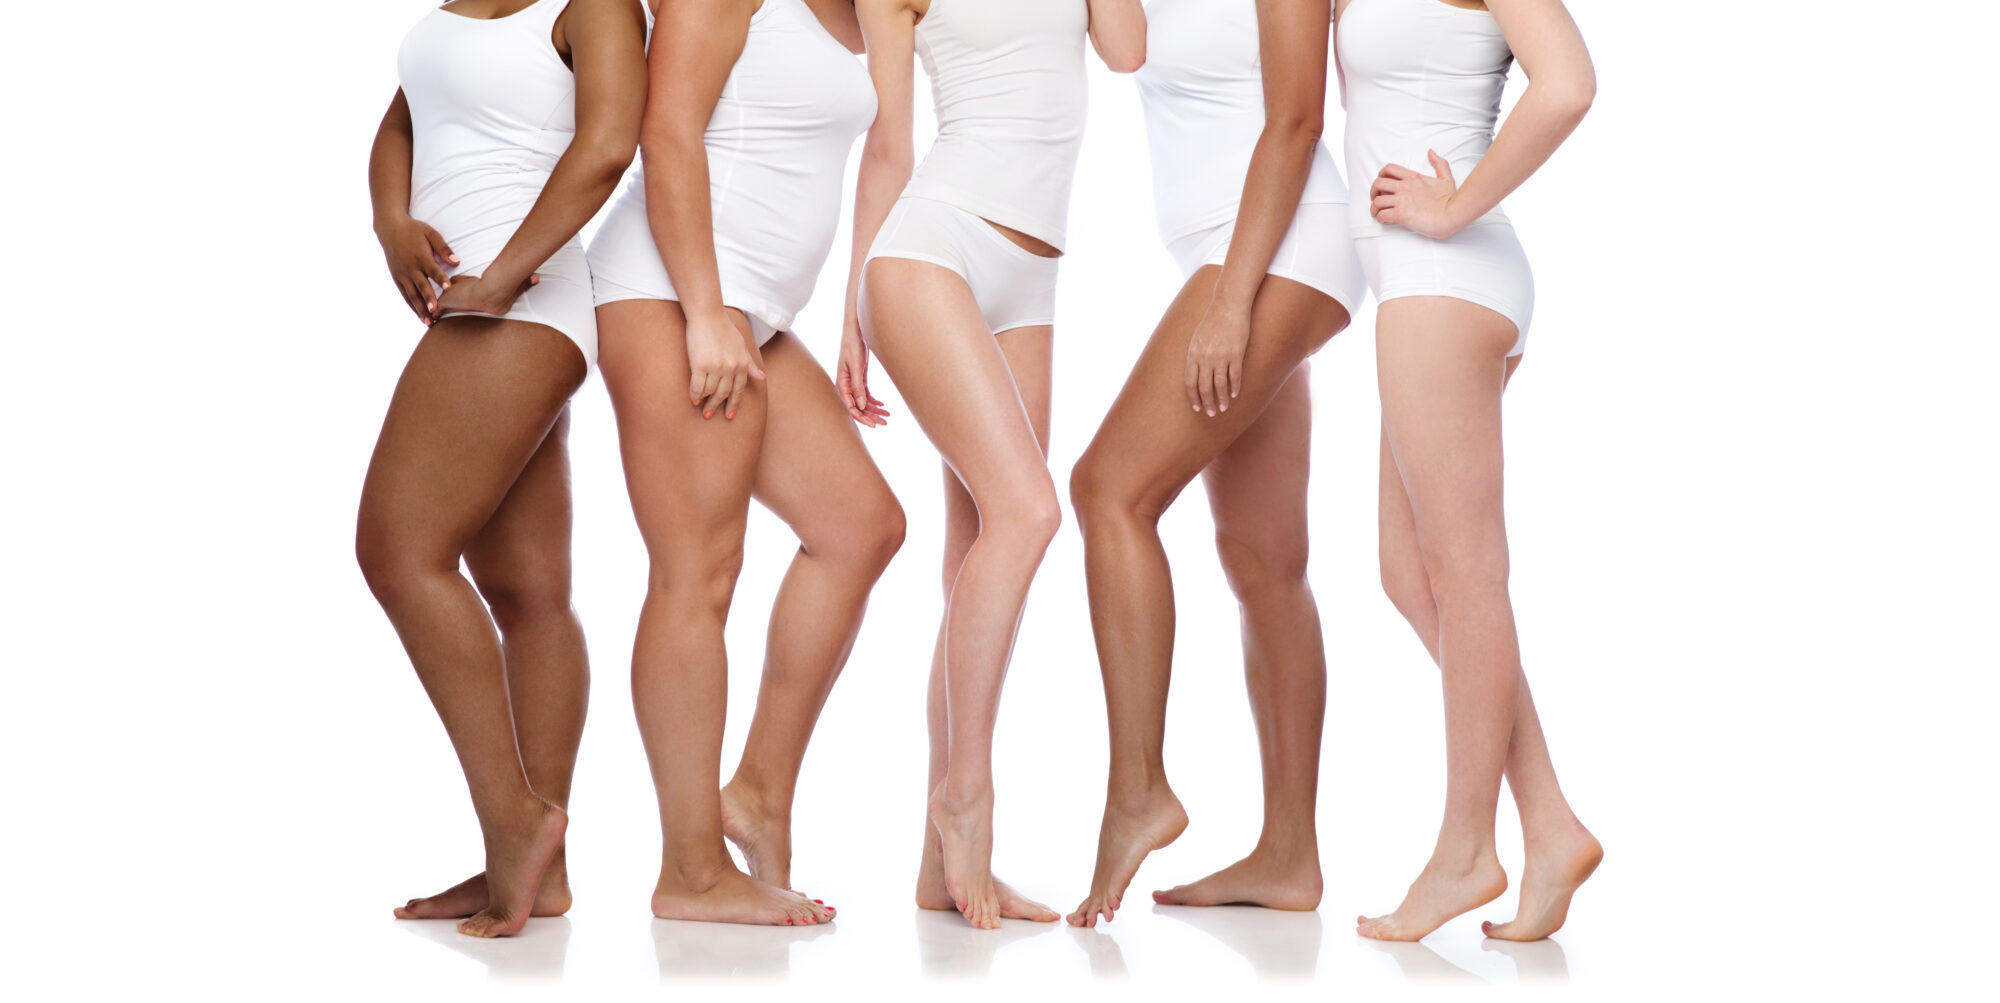 beauty, body positive and people concept - group of happy diverse women in white underwear